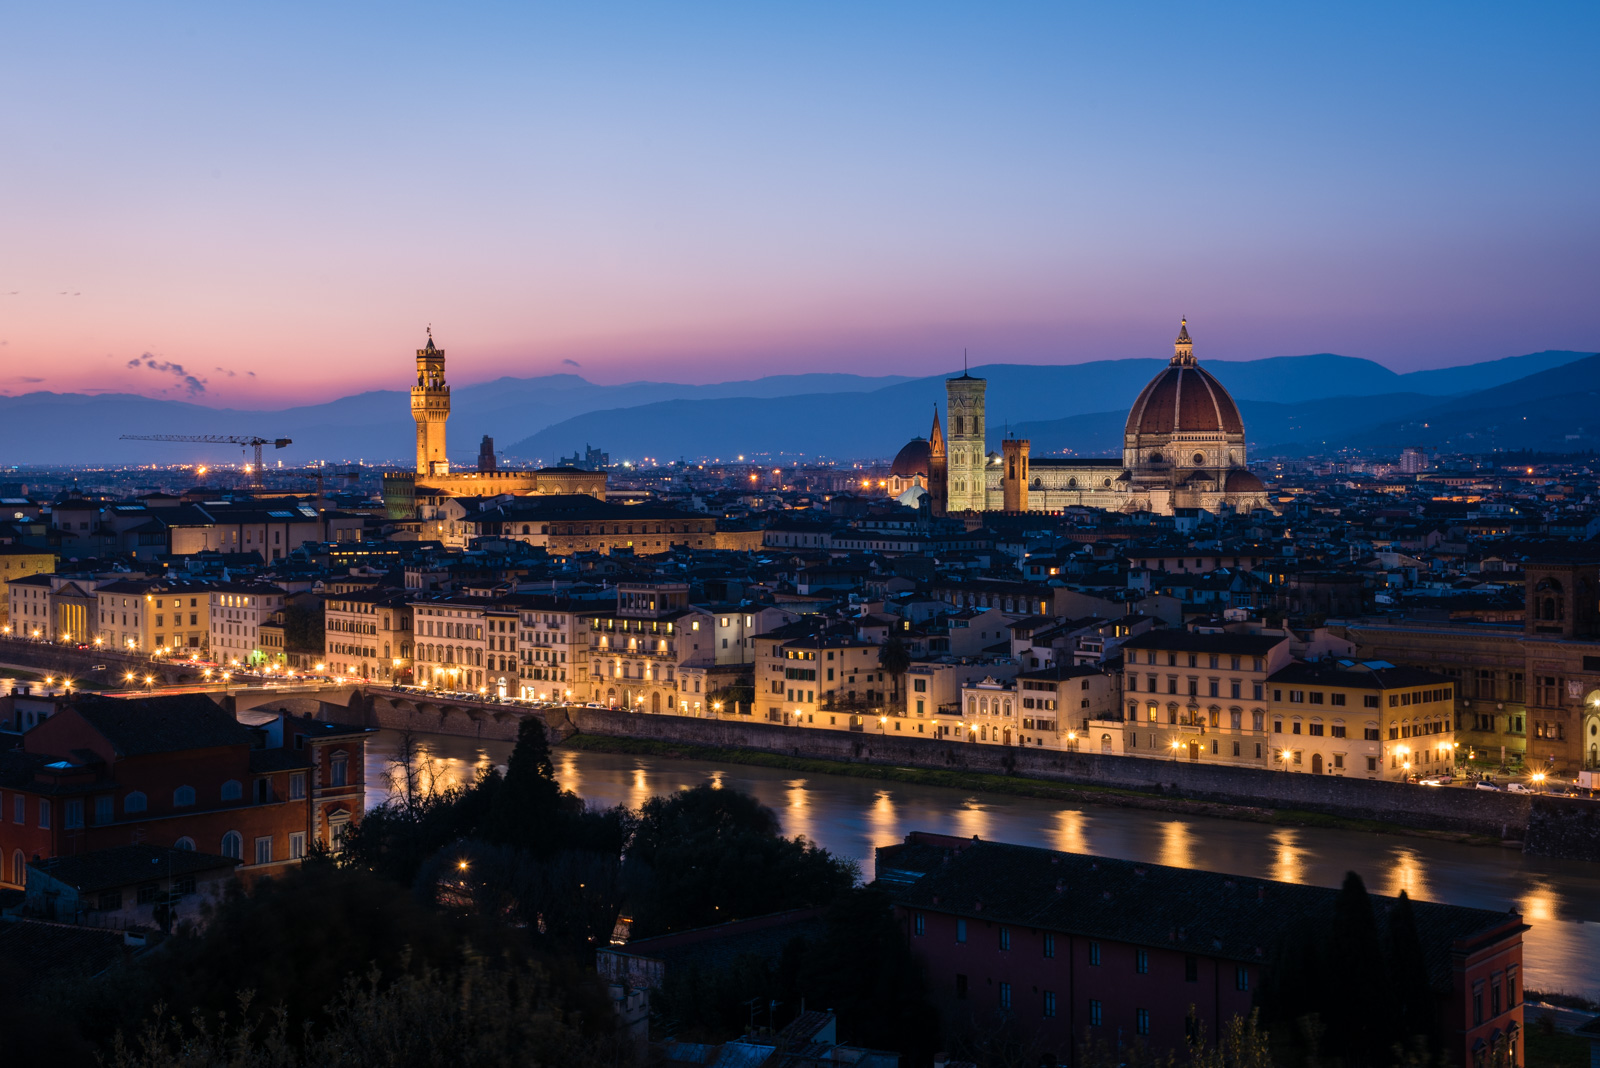 A photo during sunset at Piazzale Michelangelo, overlooking Florence.